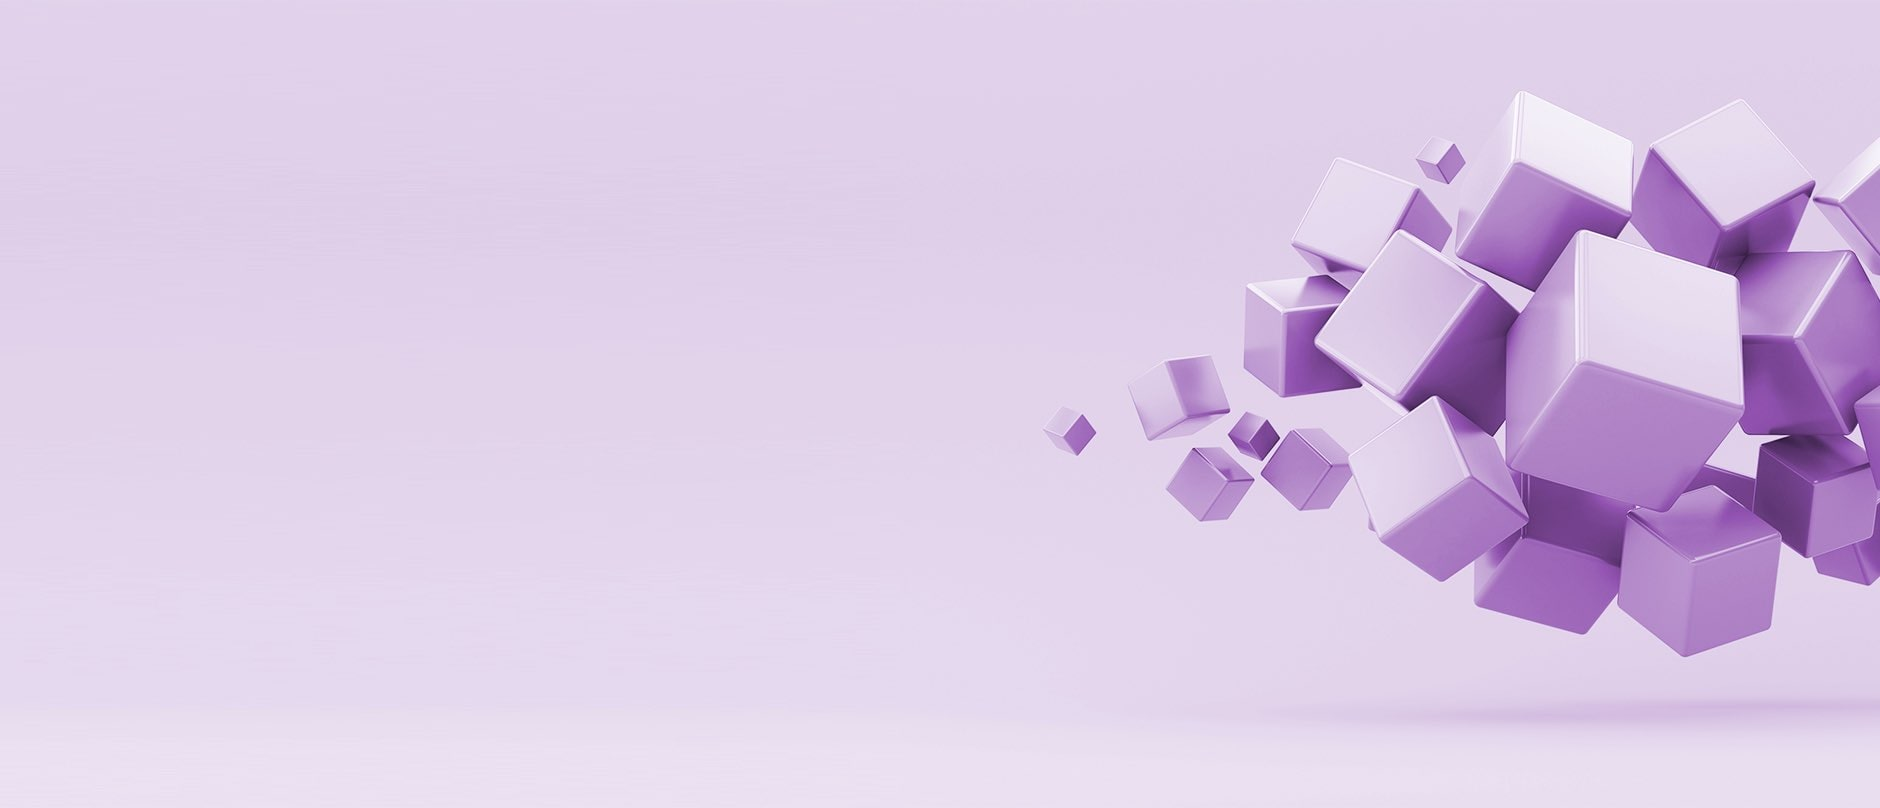 purple cubes floating on a purple background